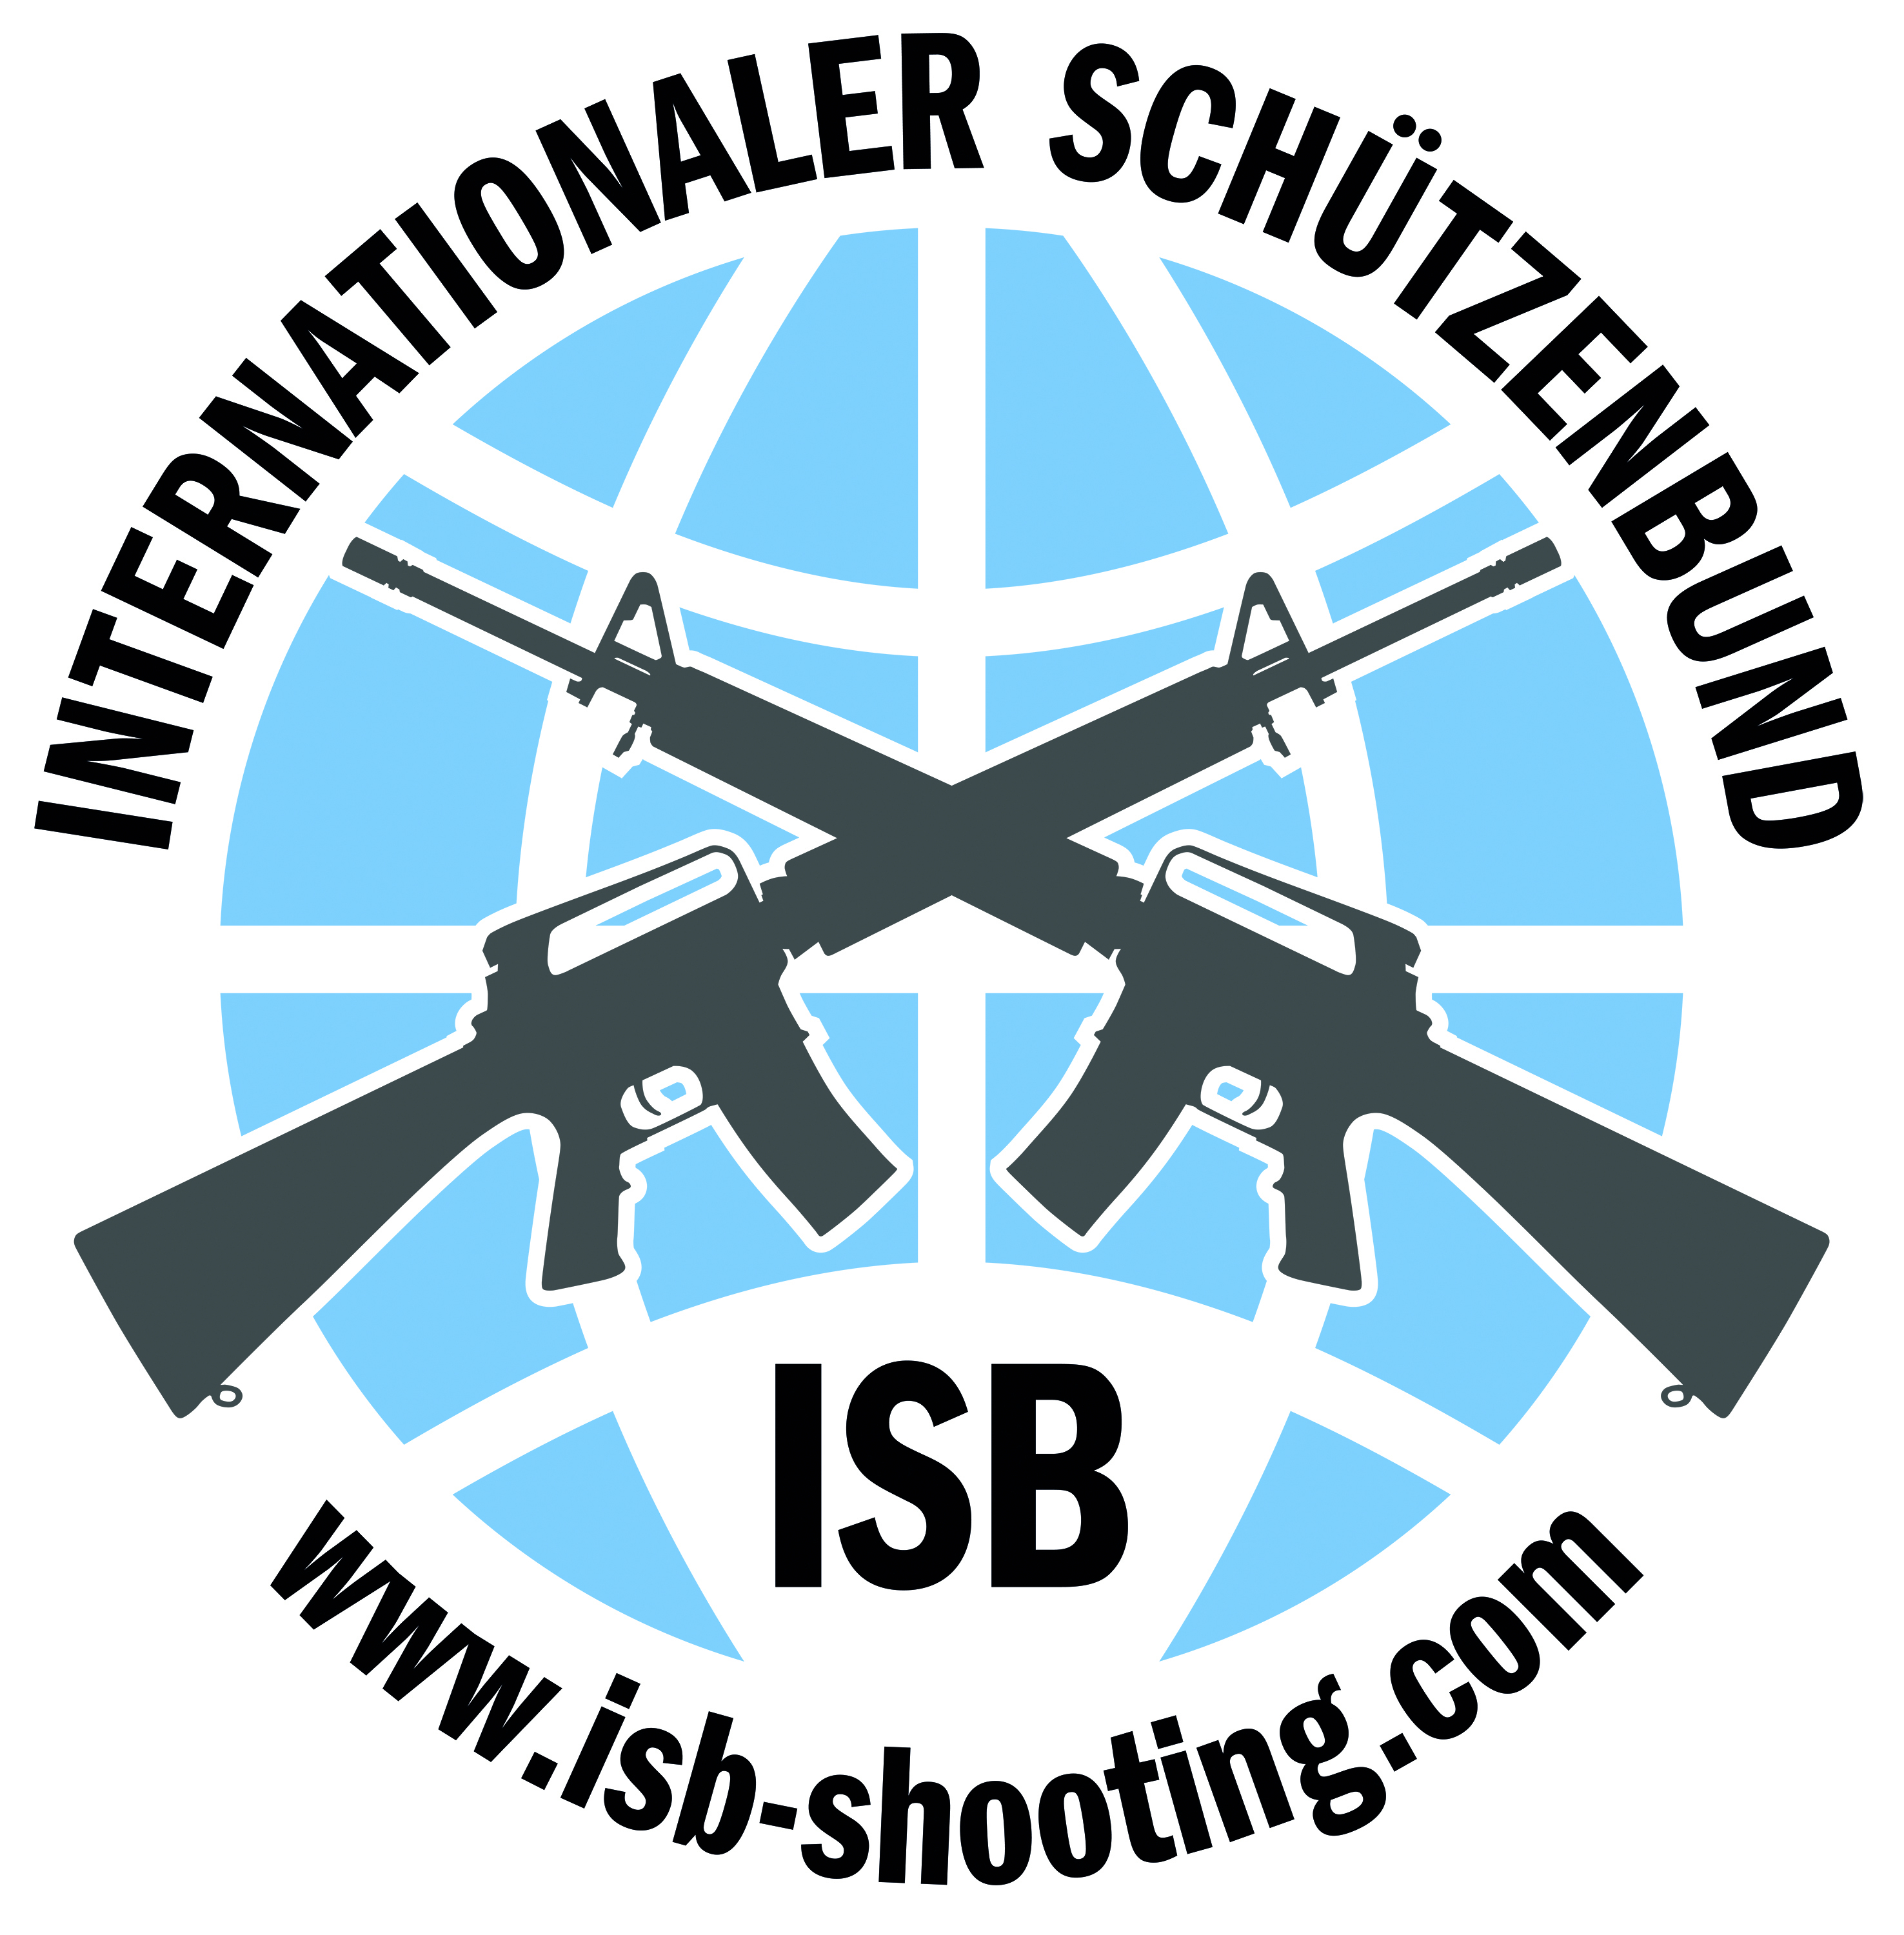 ISB - Internationaler Schützenbund